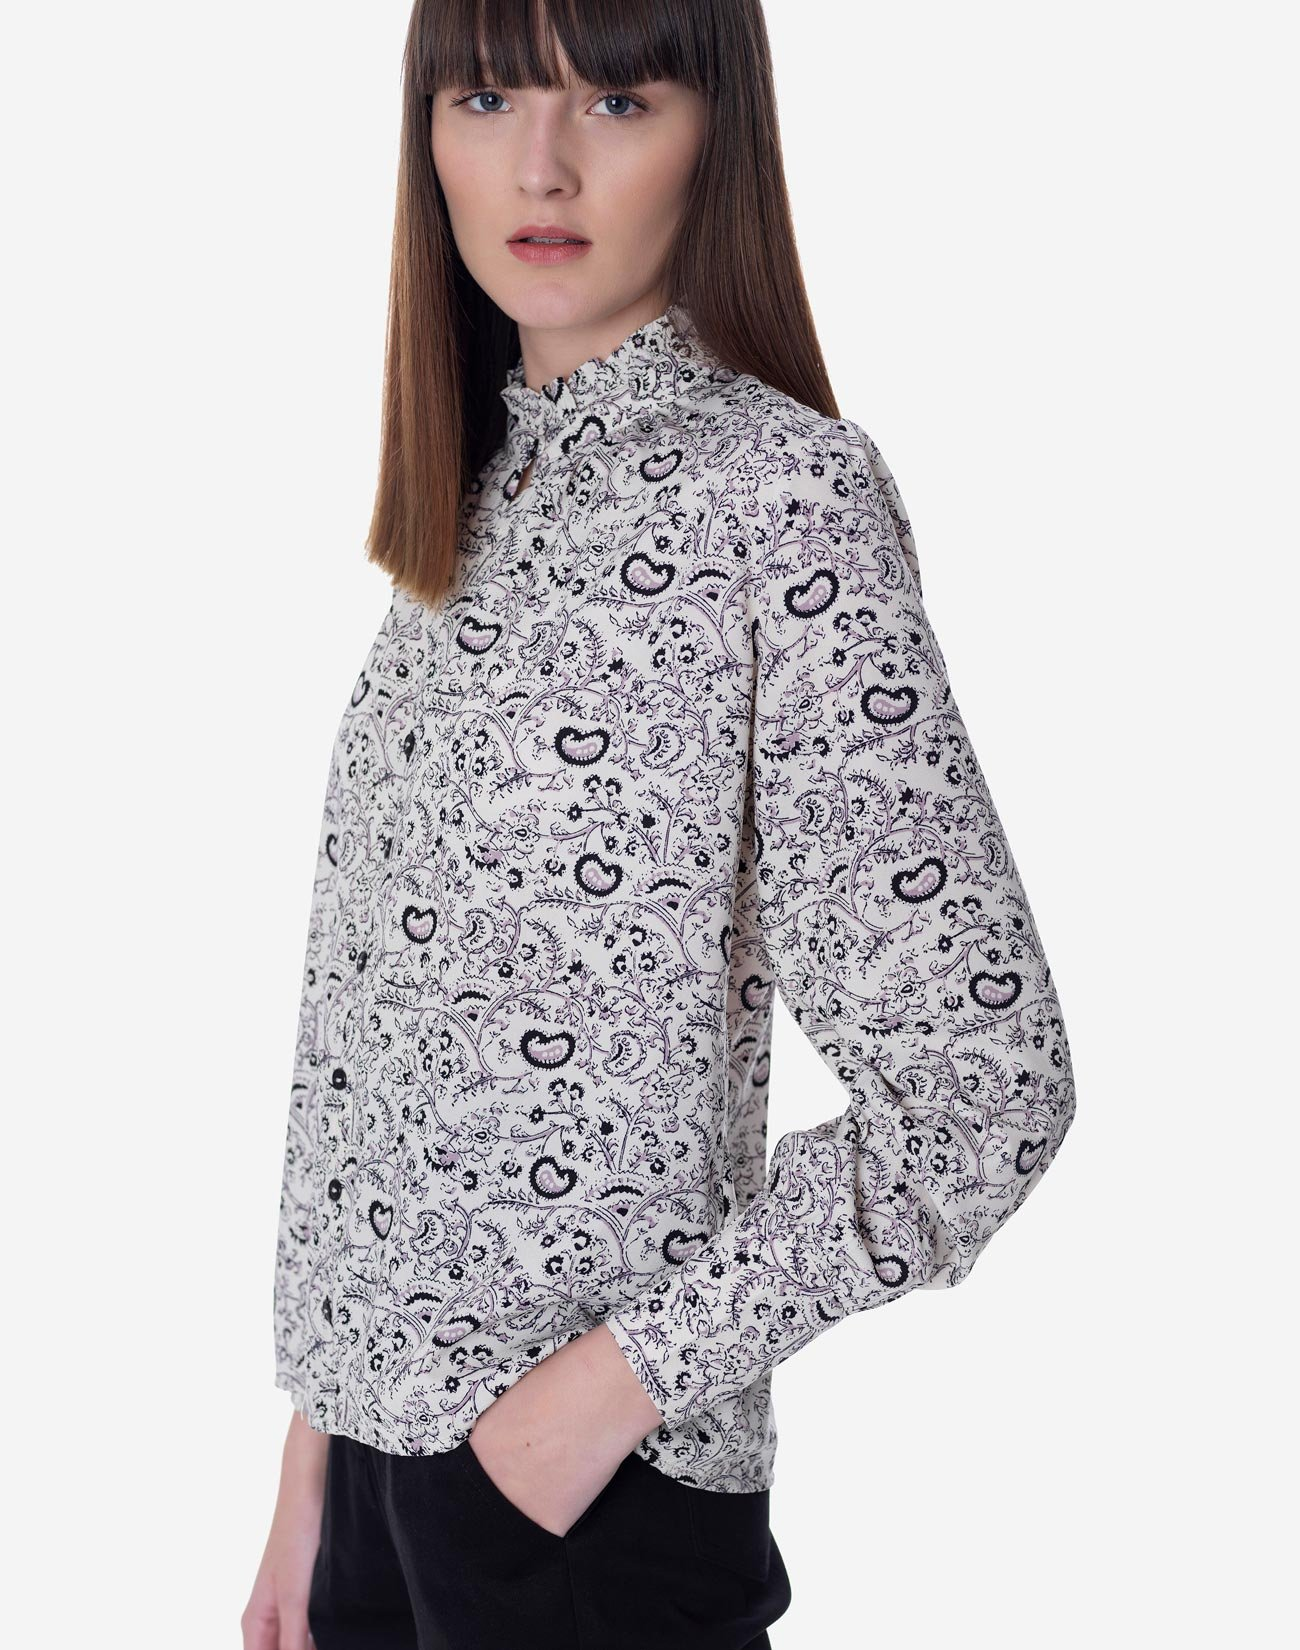 Printed shirt with ruffled neck